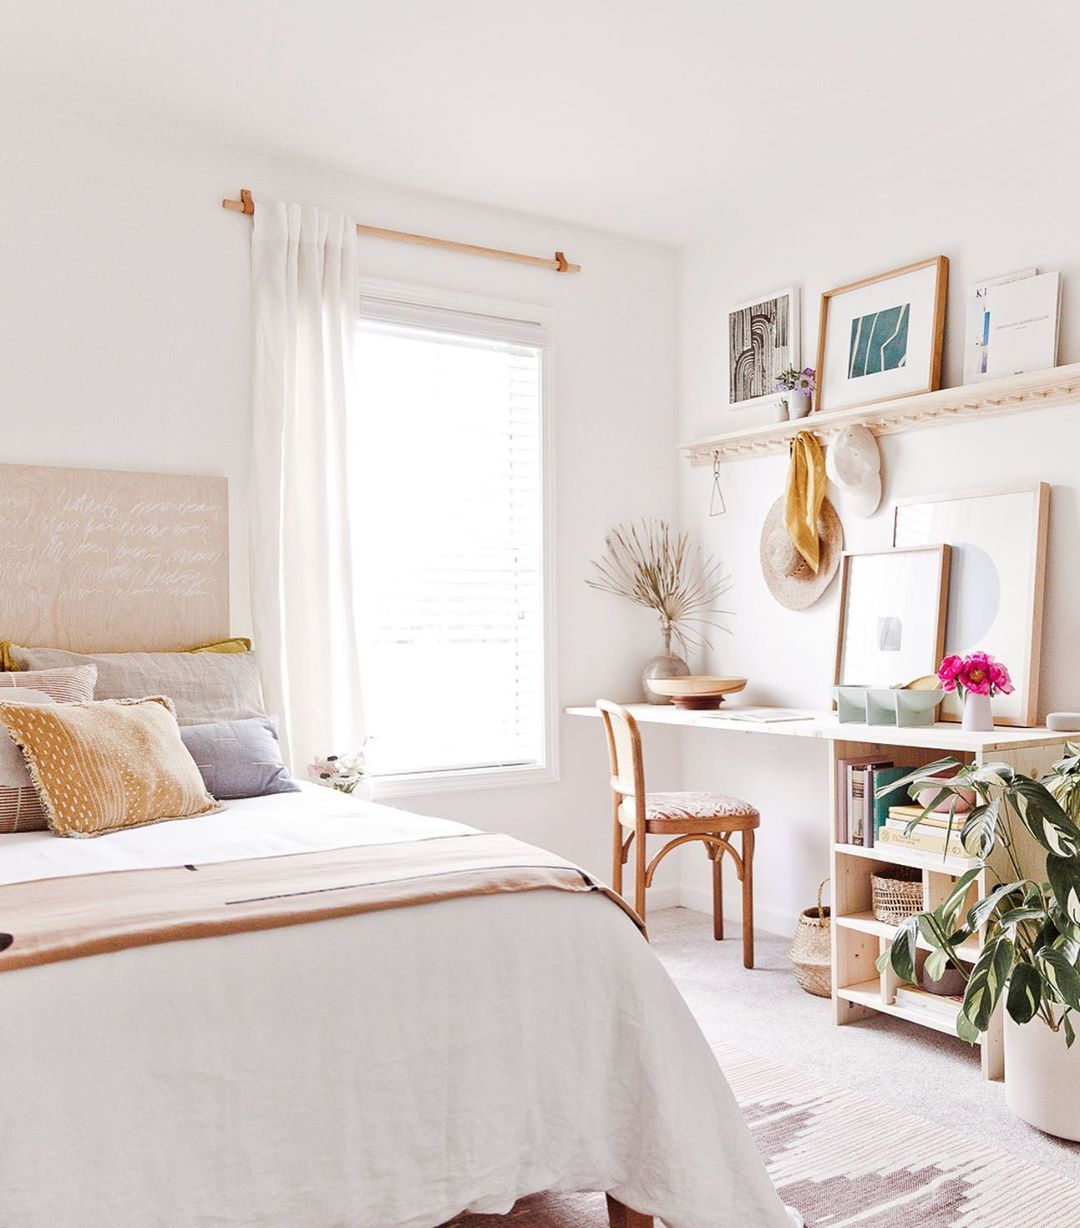 Pin By Creative Moxie Studio On Bedroom Inspirations In